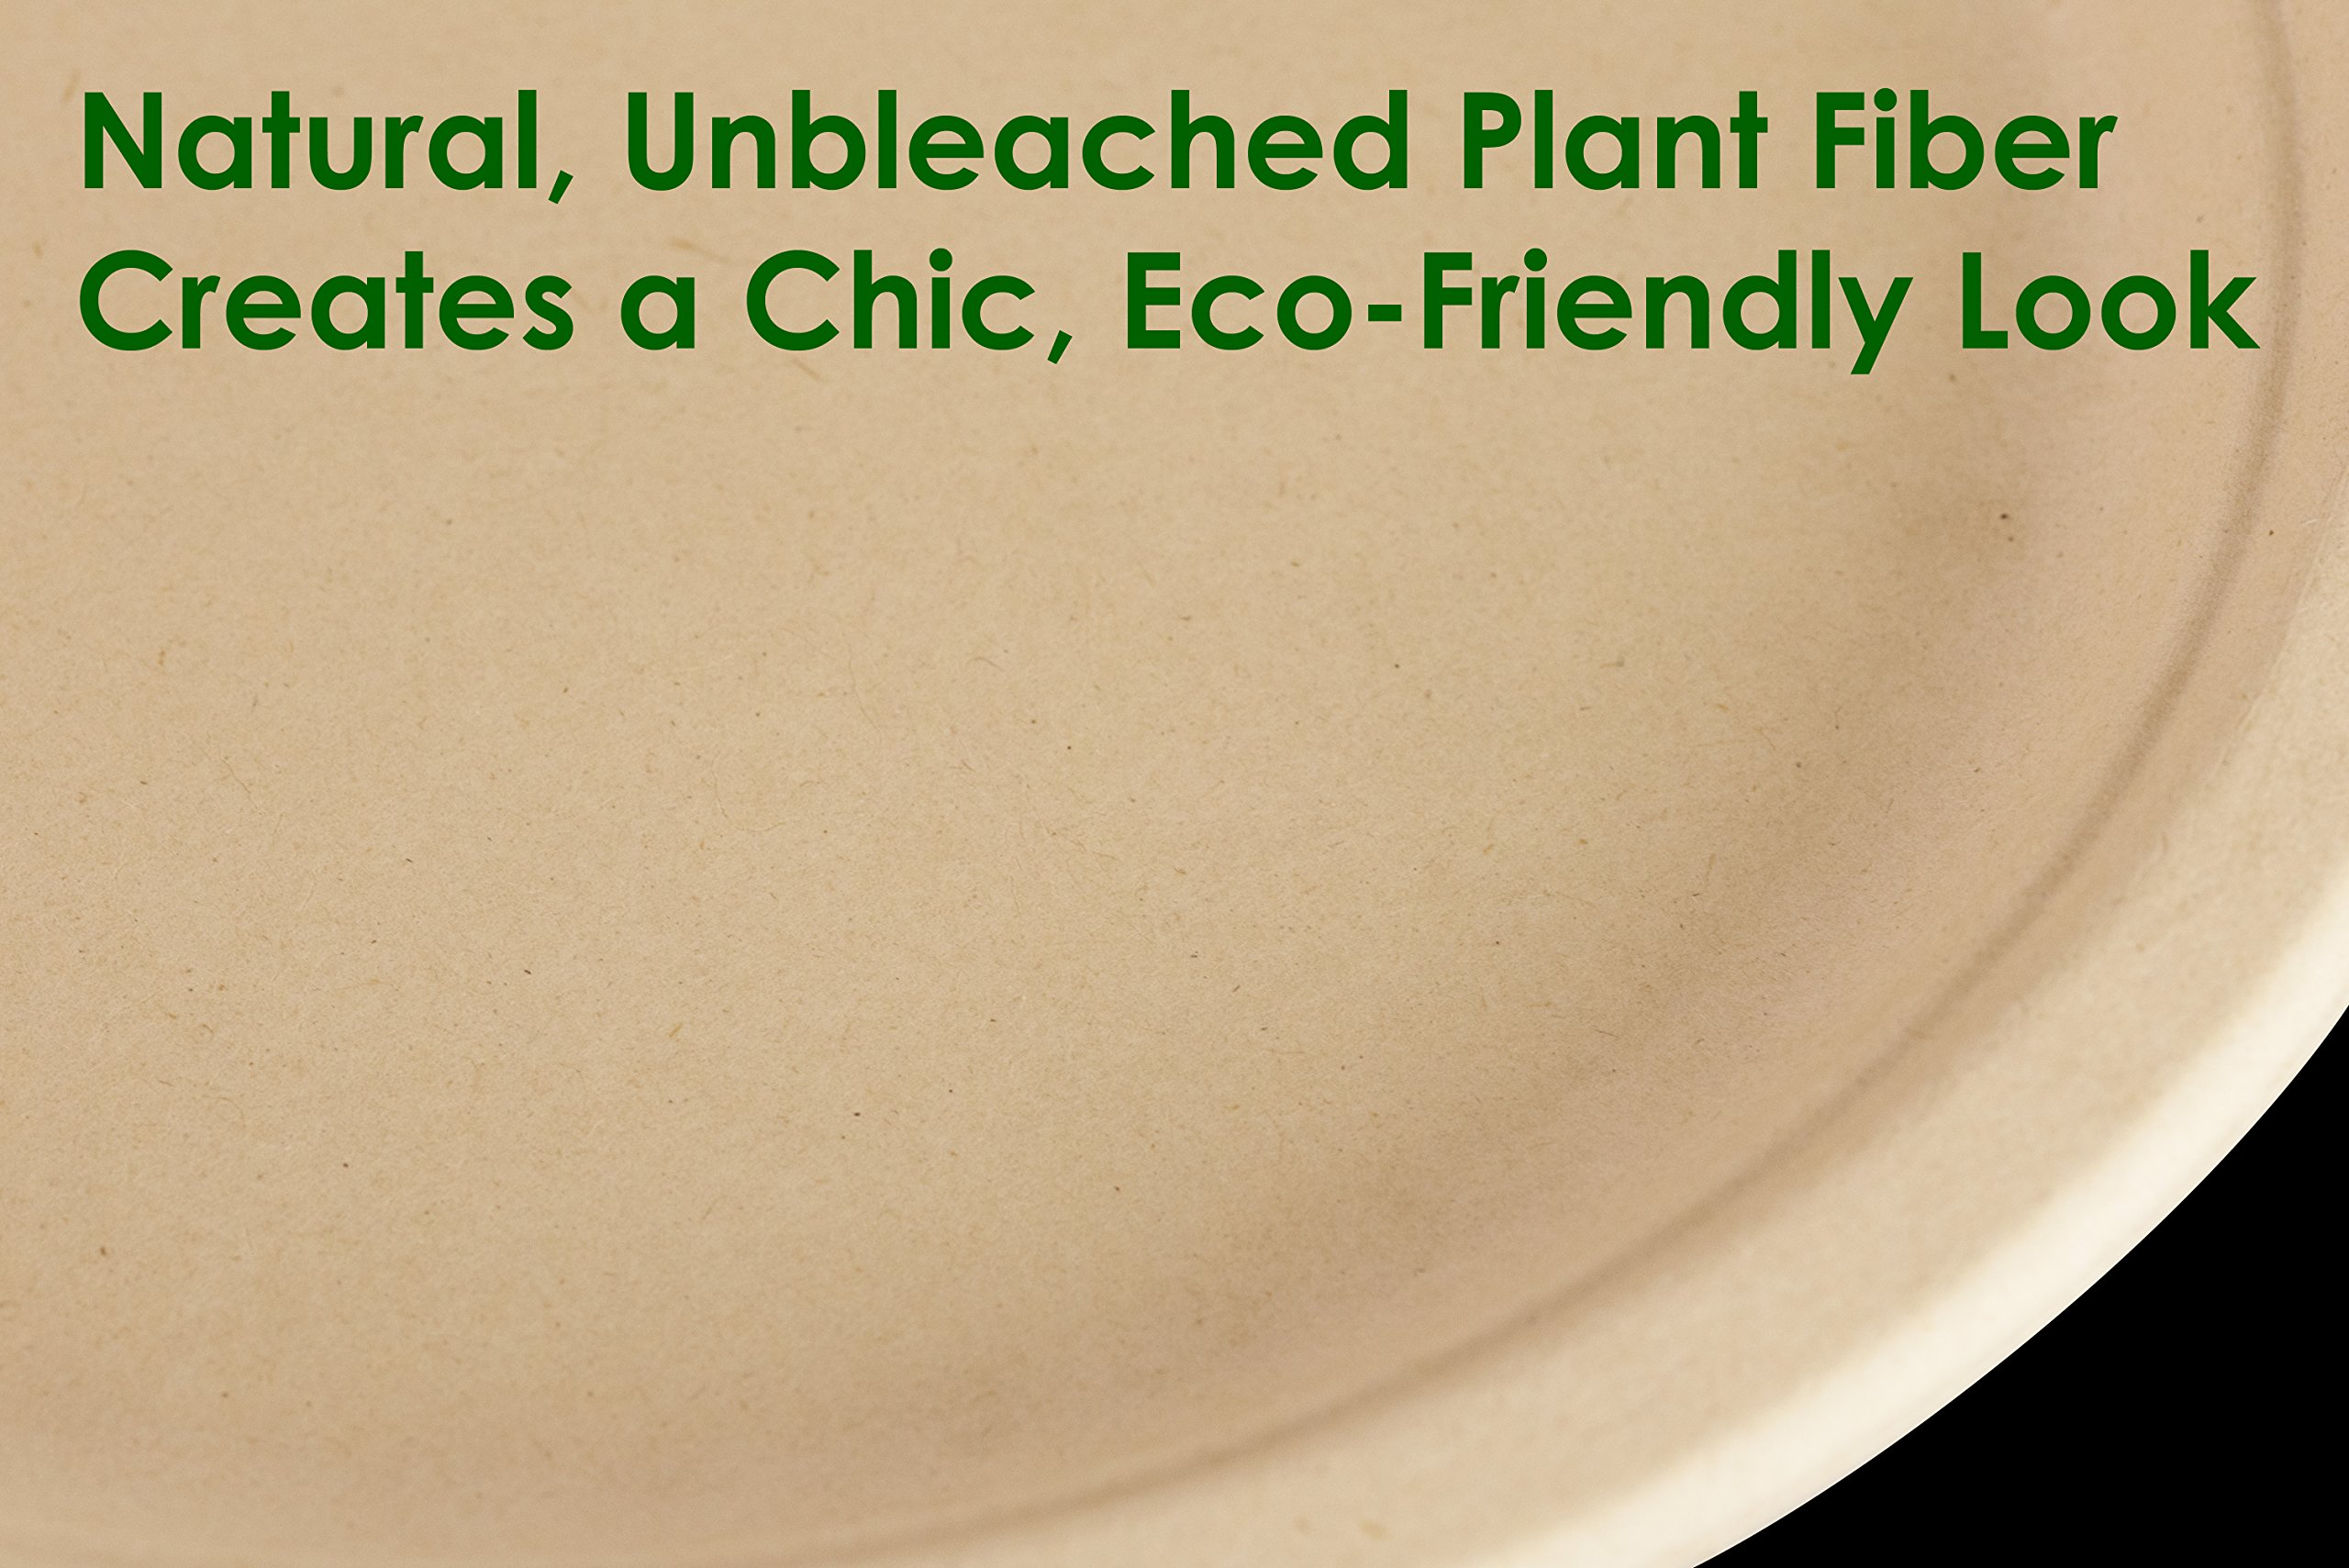 Biodegradable, Plant-Based, Tree Free, Disposable 9 Inch Plates 50 Pack. Sturdy, Gluten Free Wheatstraw Fiber is Certified Compostable, Eco-Friendly, Microwavable and Safe for Hot and Cold Foods by Avant Grub (Image #2)